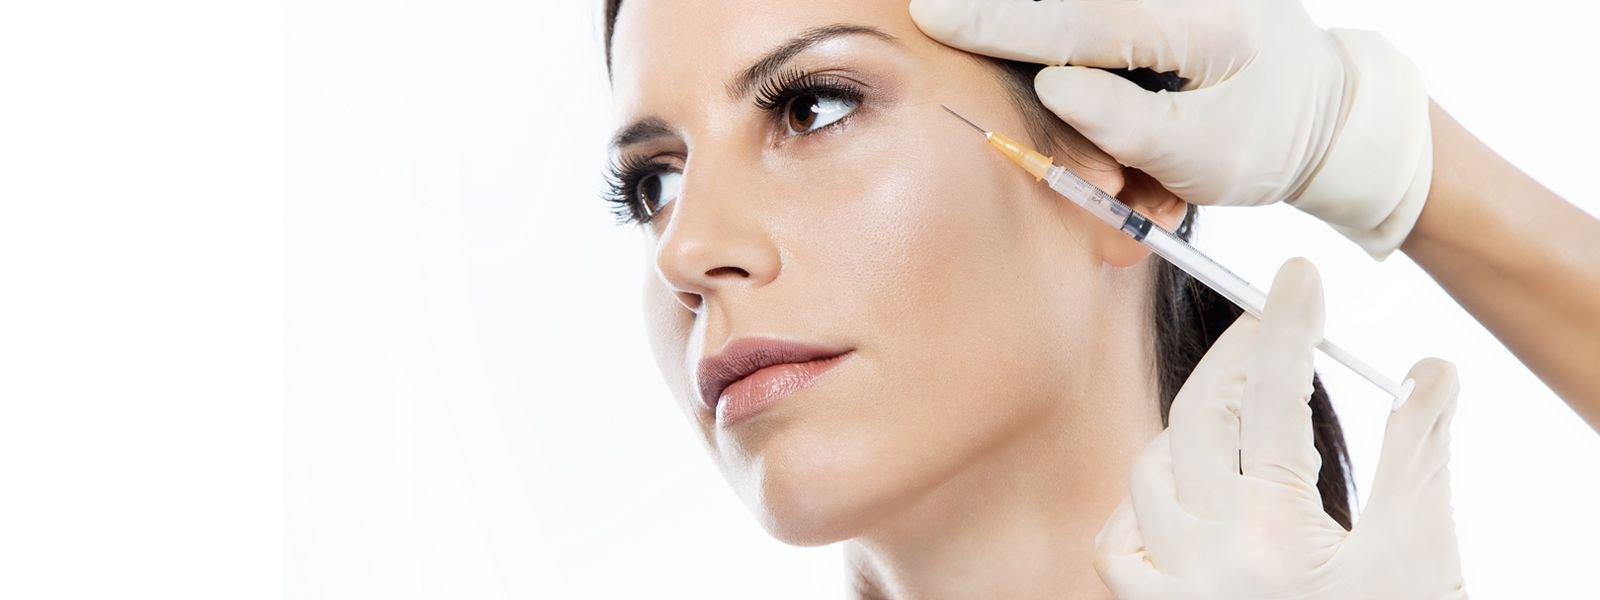 Everything You Need to Know before Getting Botox